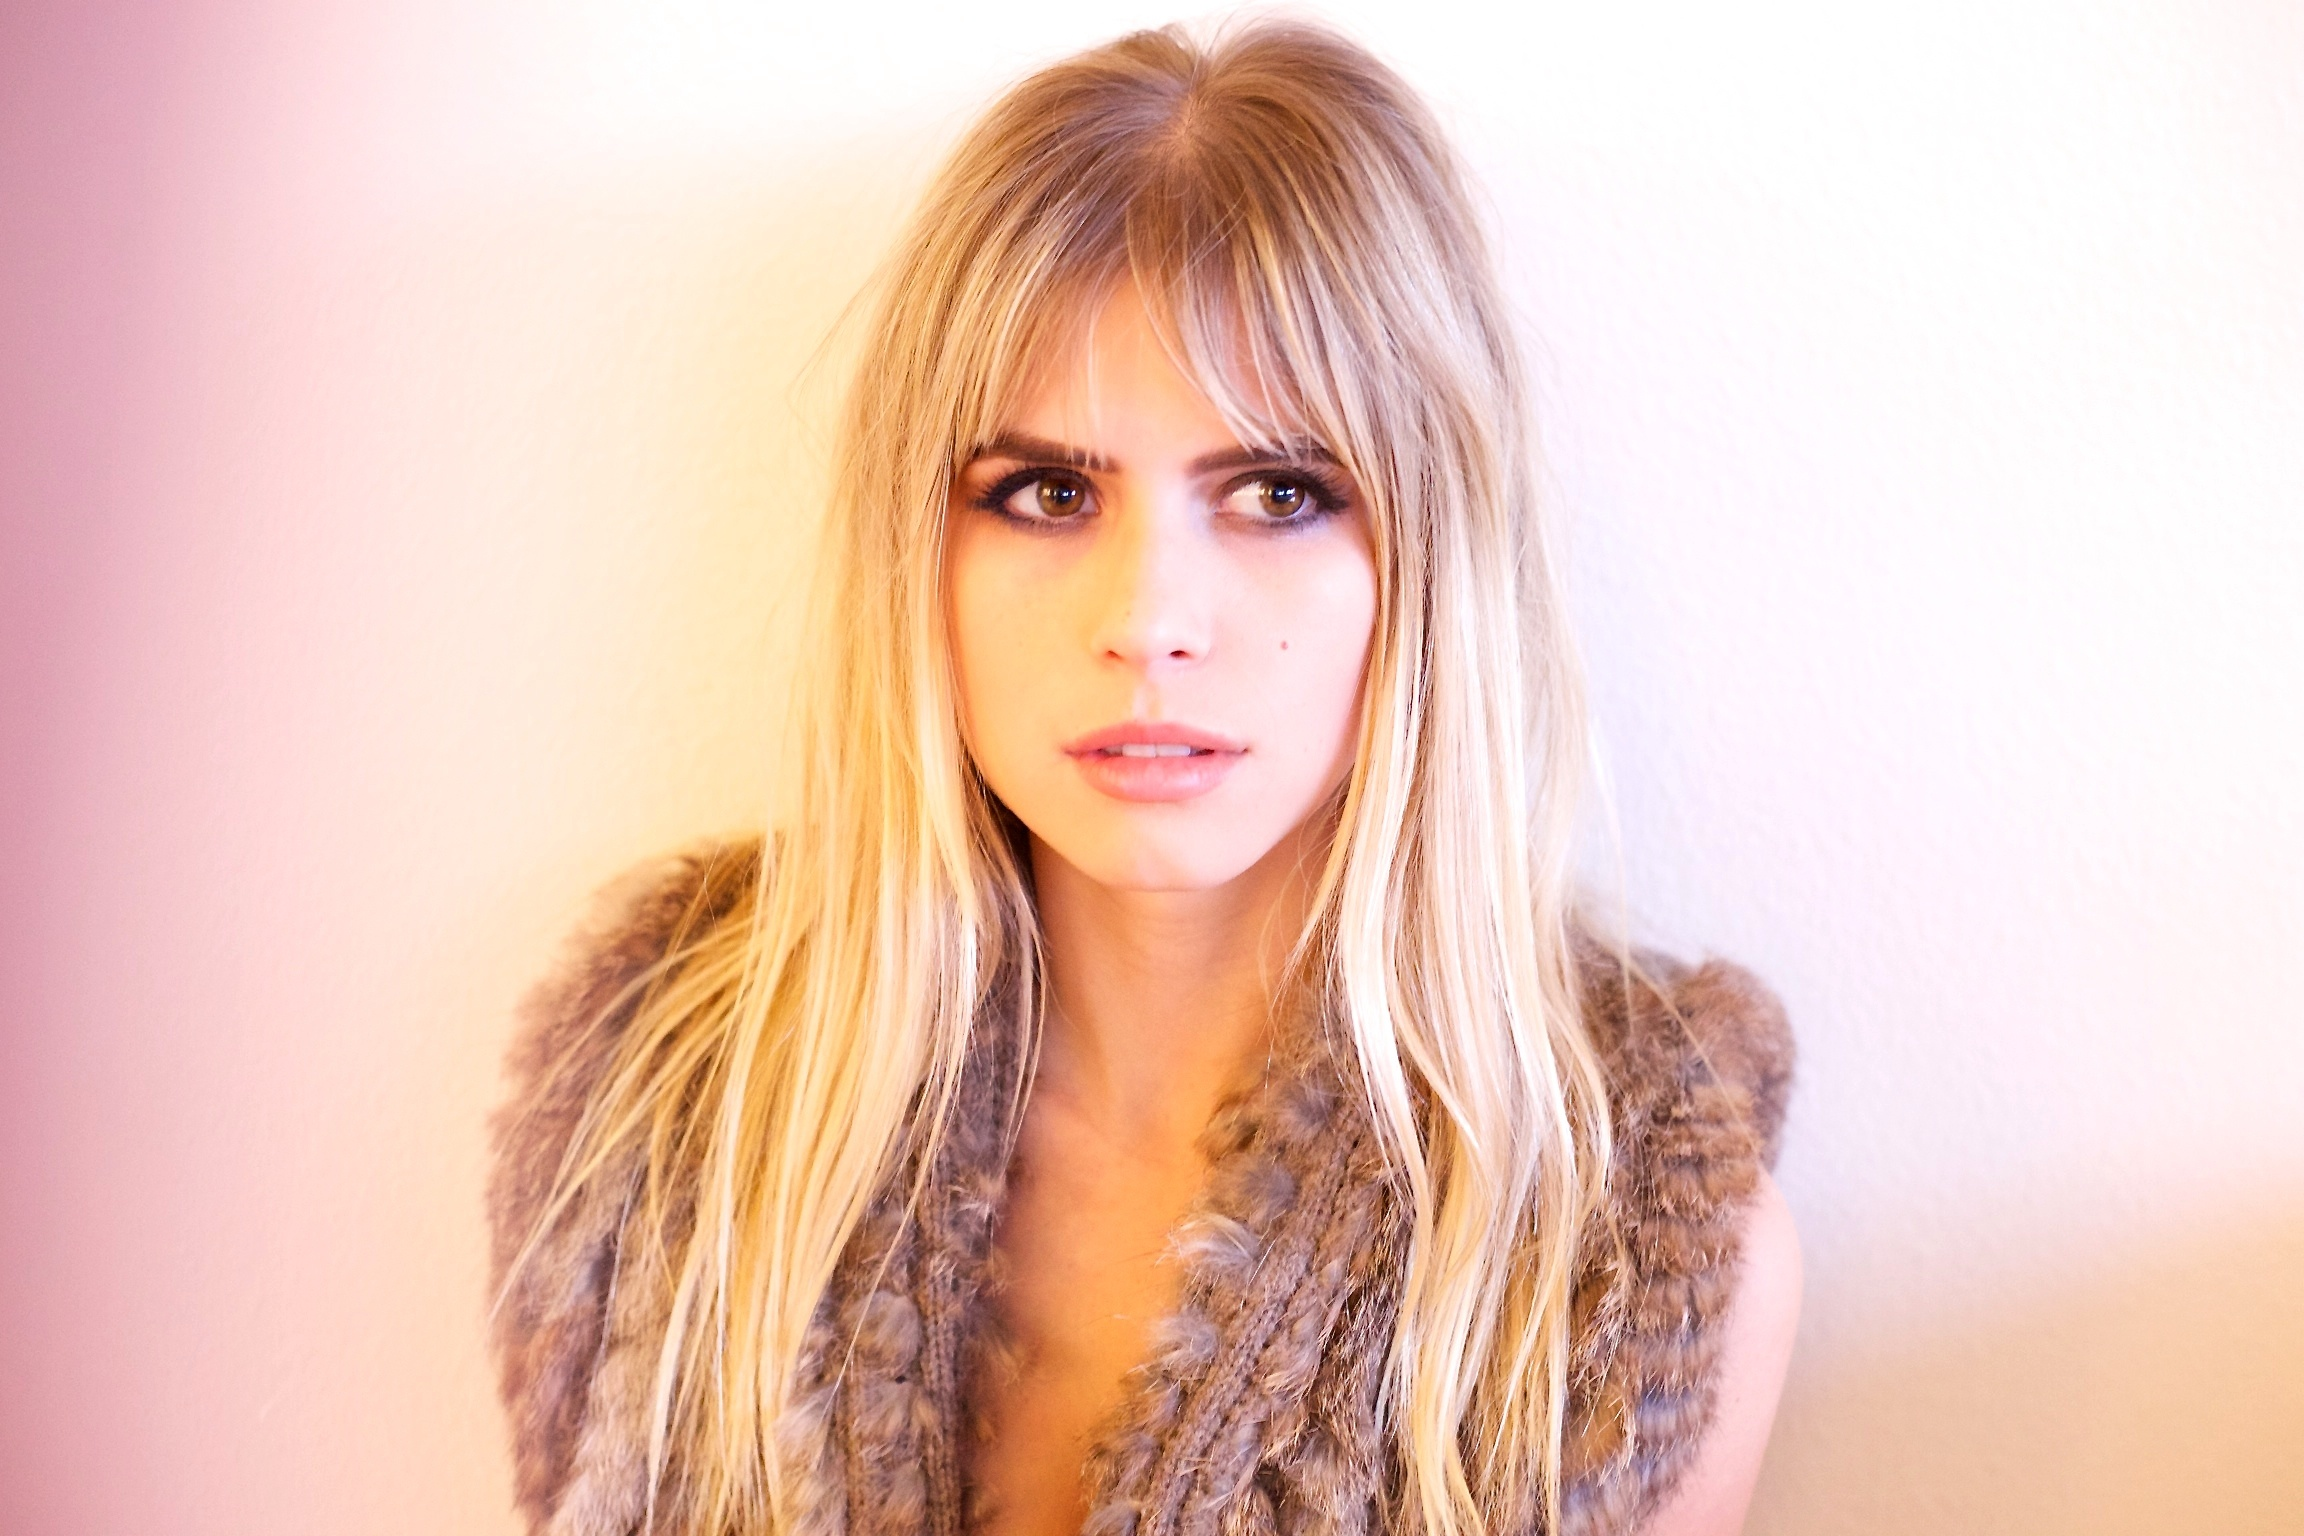 Carlson Young photo 8 of 26 pics wallpaper   photo 880878 2304x1536